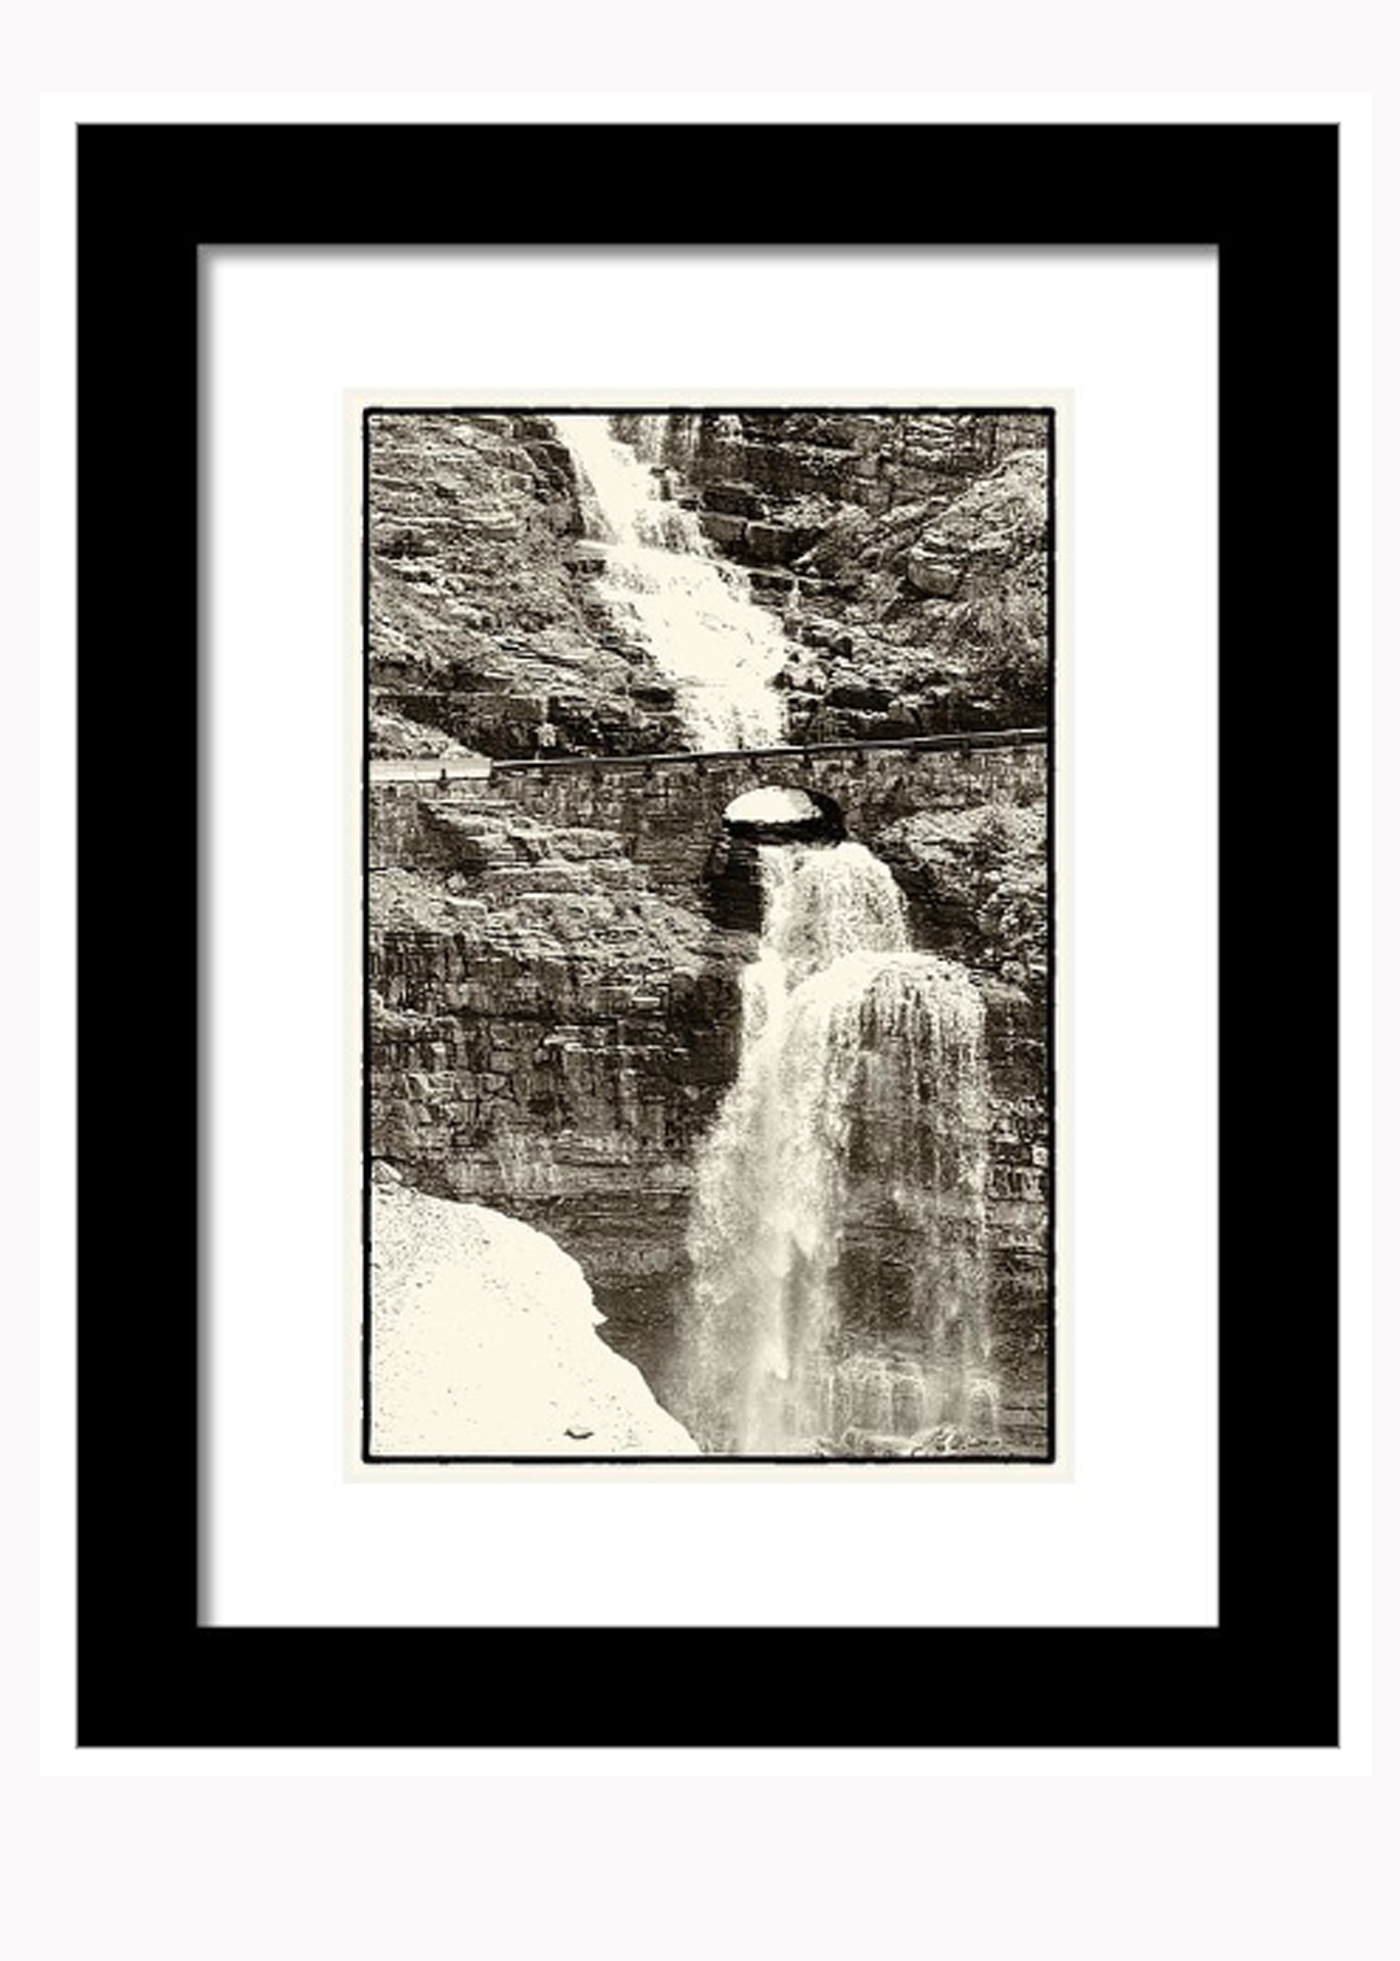 11x14 Framed print with matte